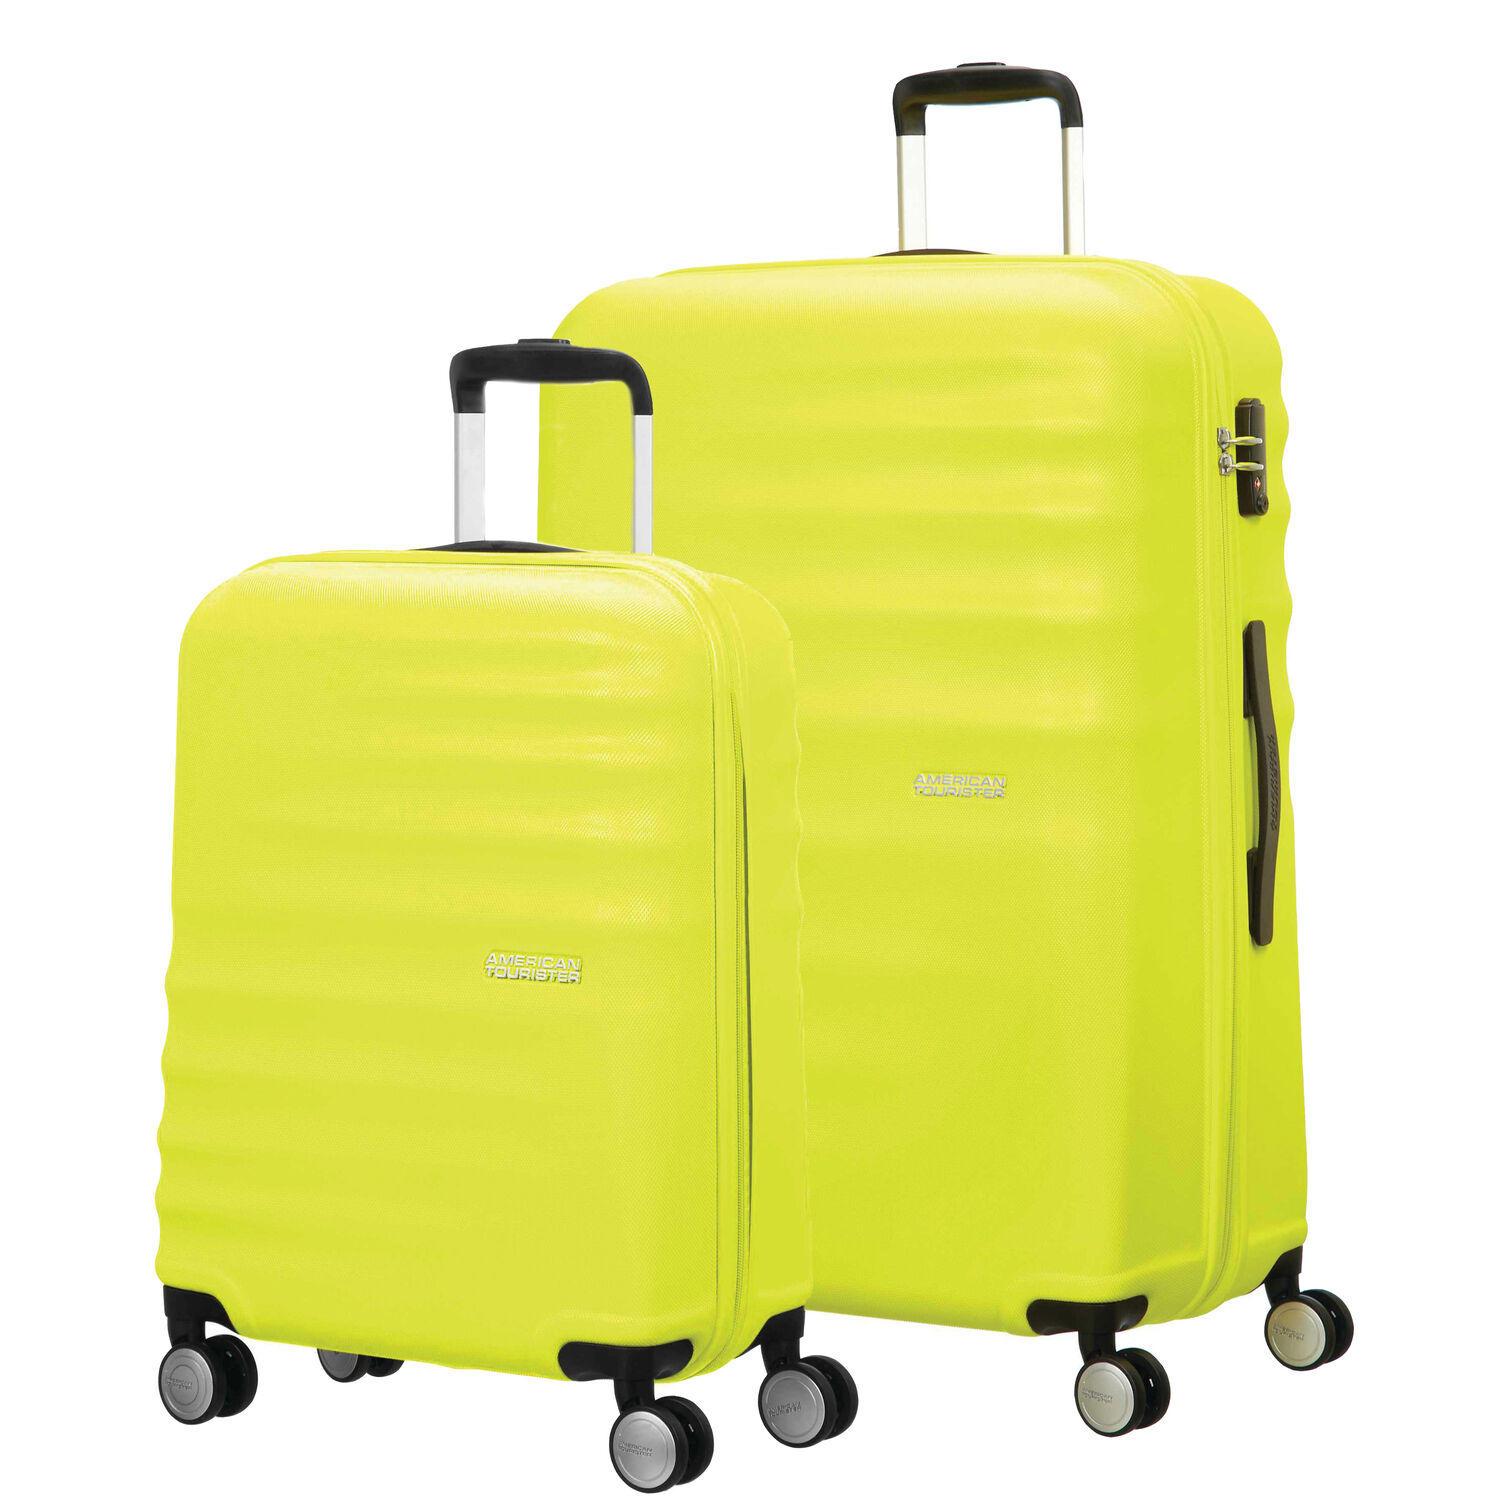 a524c7cf21 American Tourister Wavebreaker 2 PC Set in the color Lime.